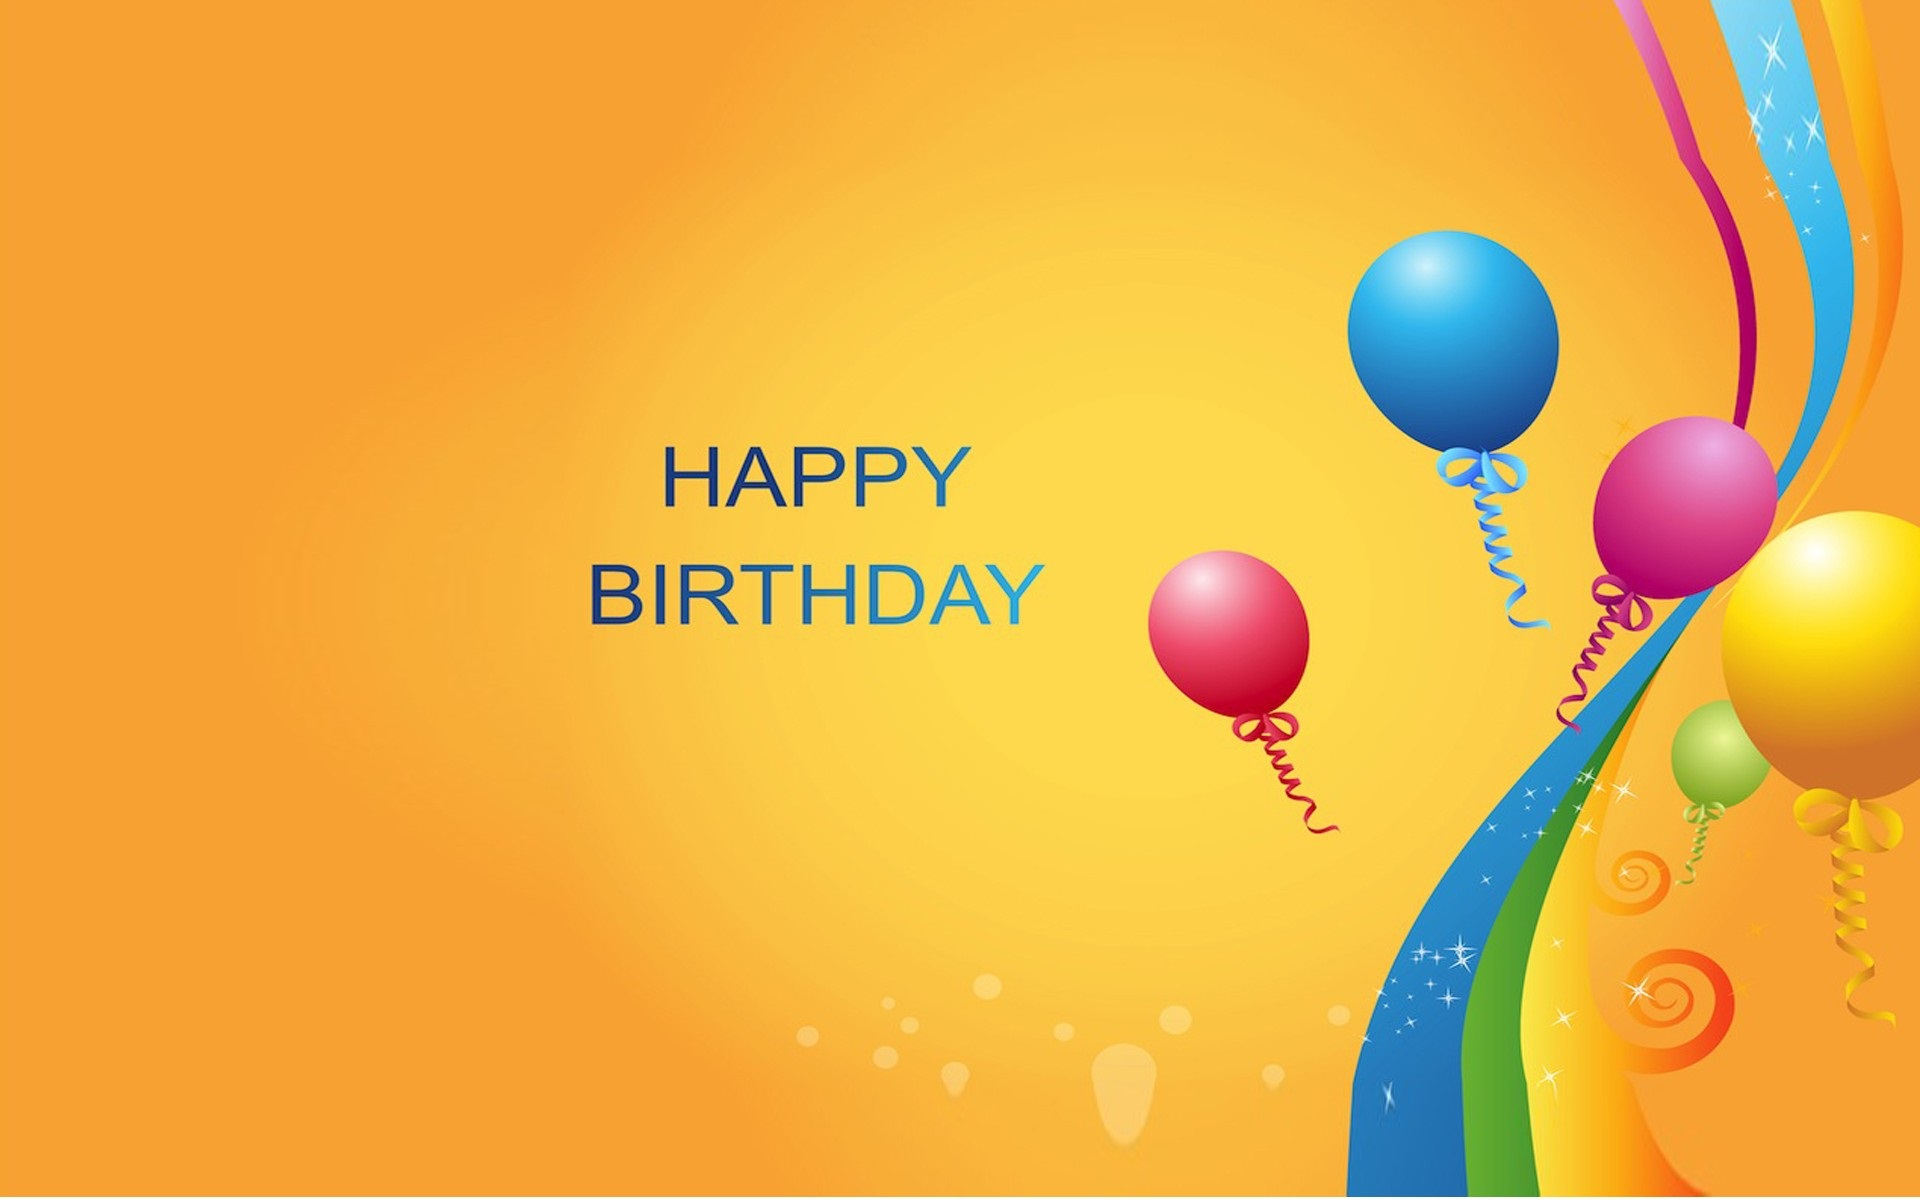 wallpaper birthday images ; Birthday-wallpapers-HD-CollectionsHappy-Birthday-Wishes-Wallpapers